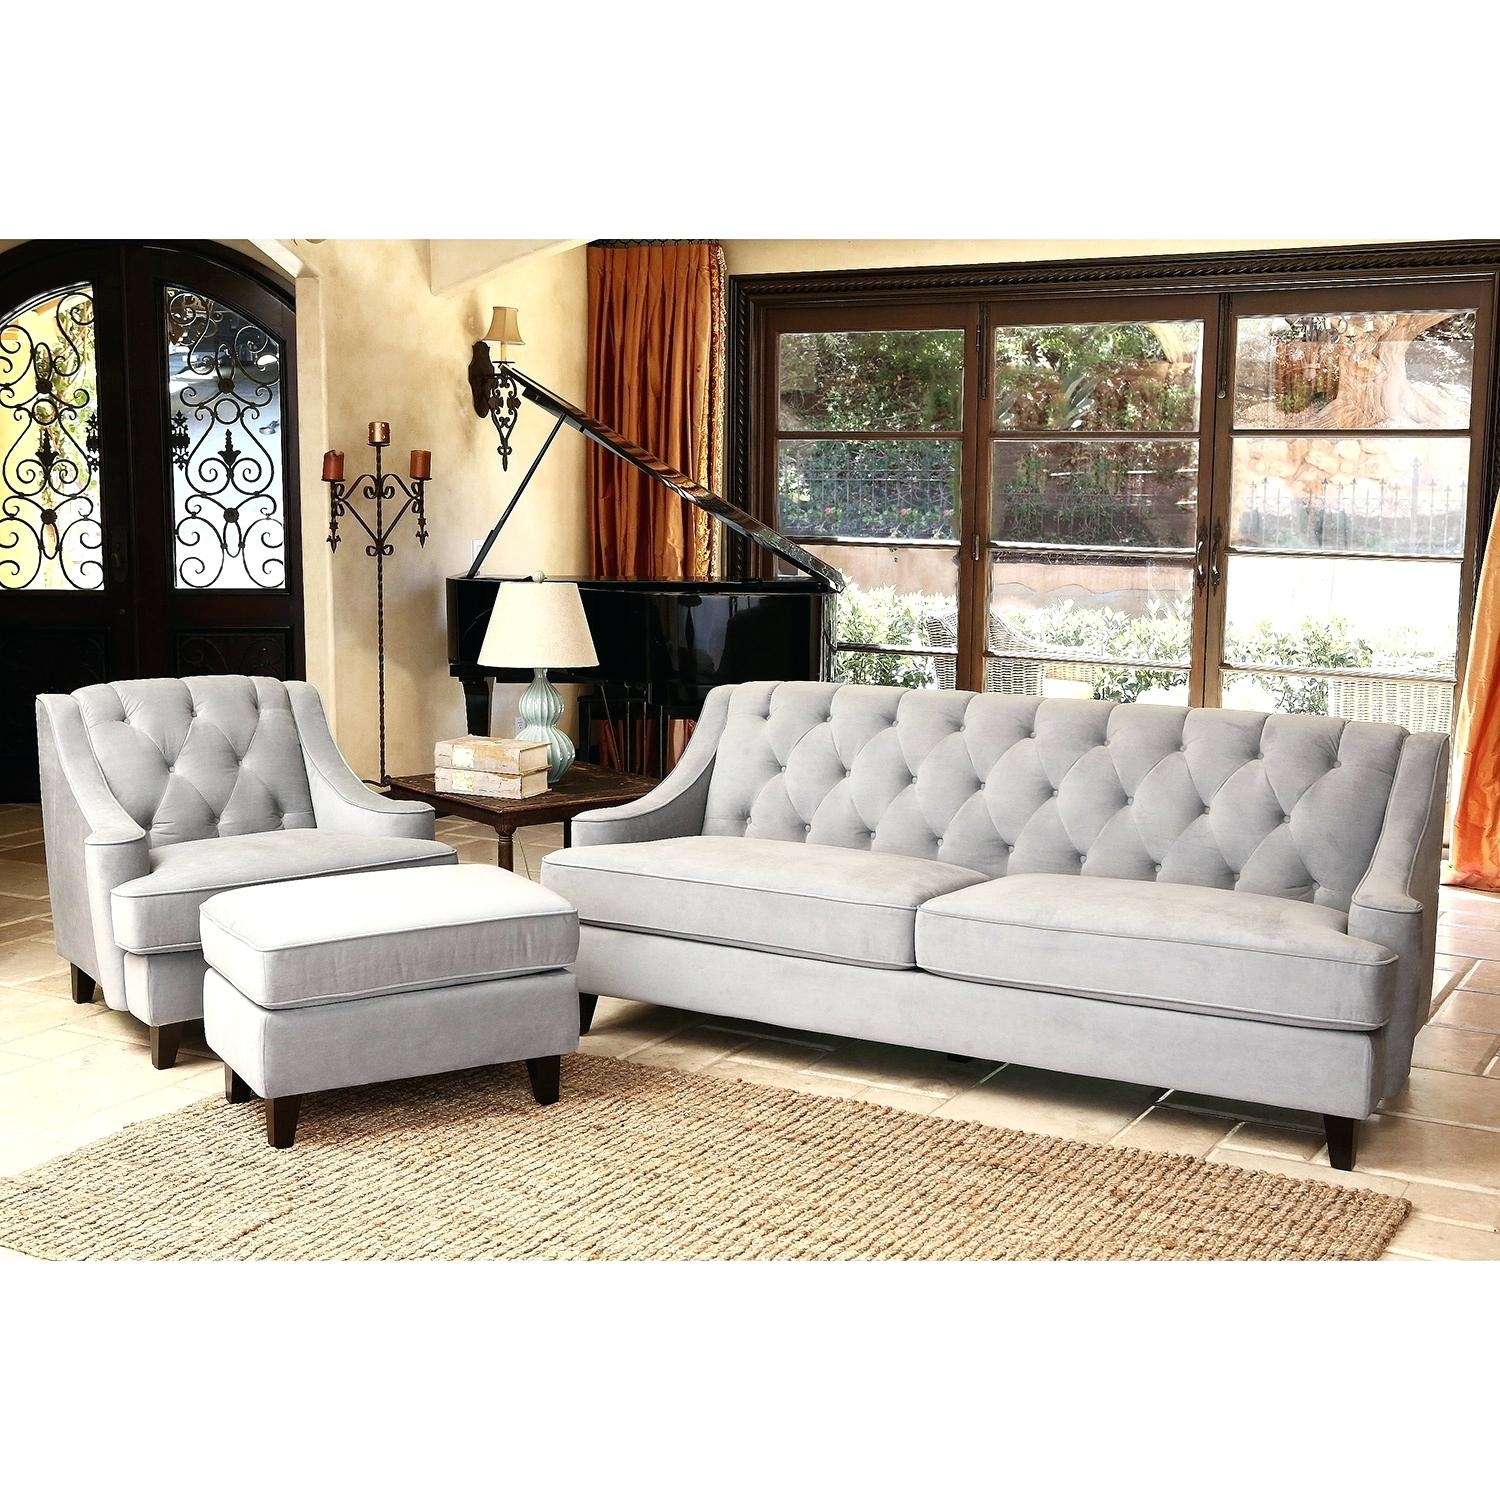 Dark Gray Ottoman Abson Living Ci D107 Crm Bailey Sectional Sofa Pertaining To Abbyson Living Charlotte Beige Sectional Sofa And Ottoman (Image 9 of 15)